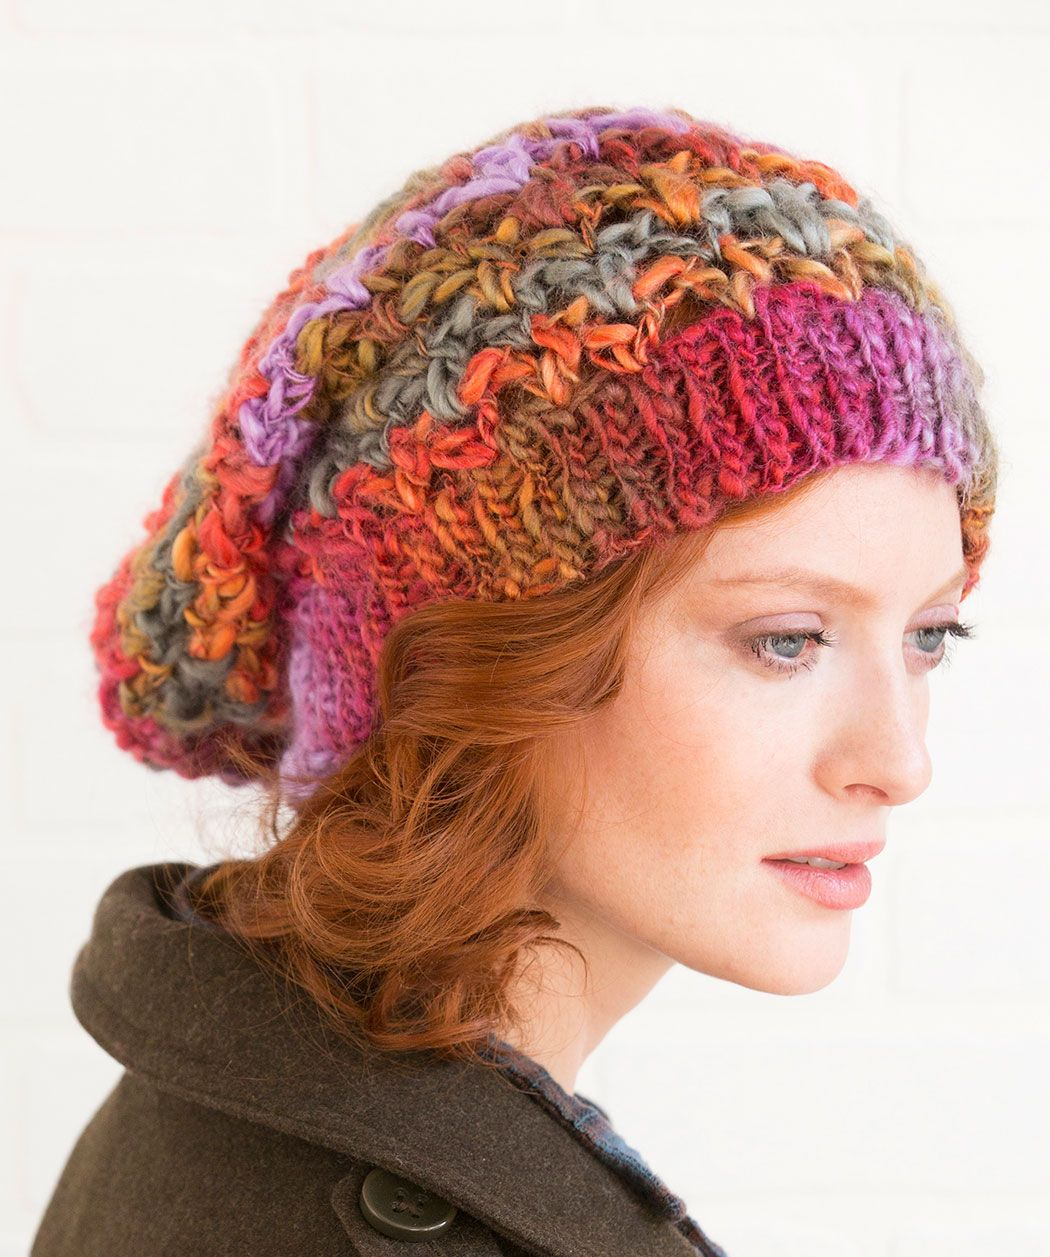 Upscale Slouchy Hat Free Crochet Pattern In Red Heart Yarns The